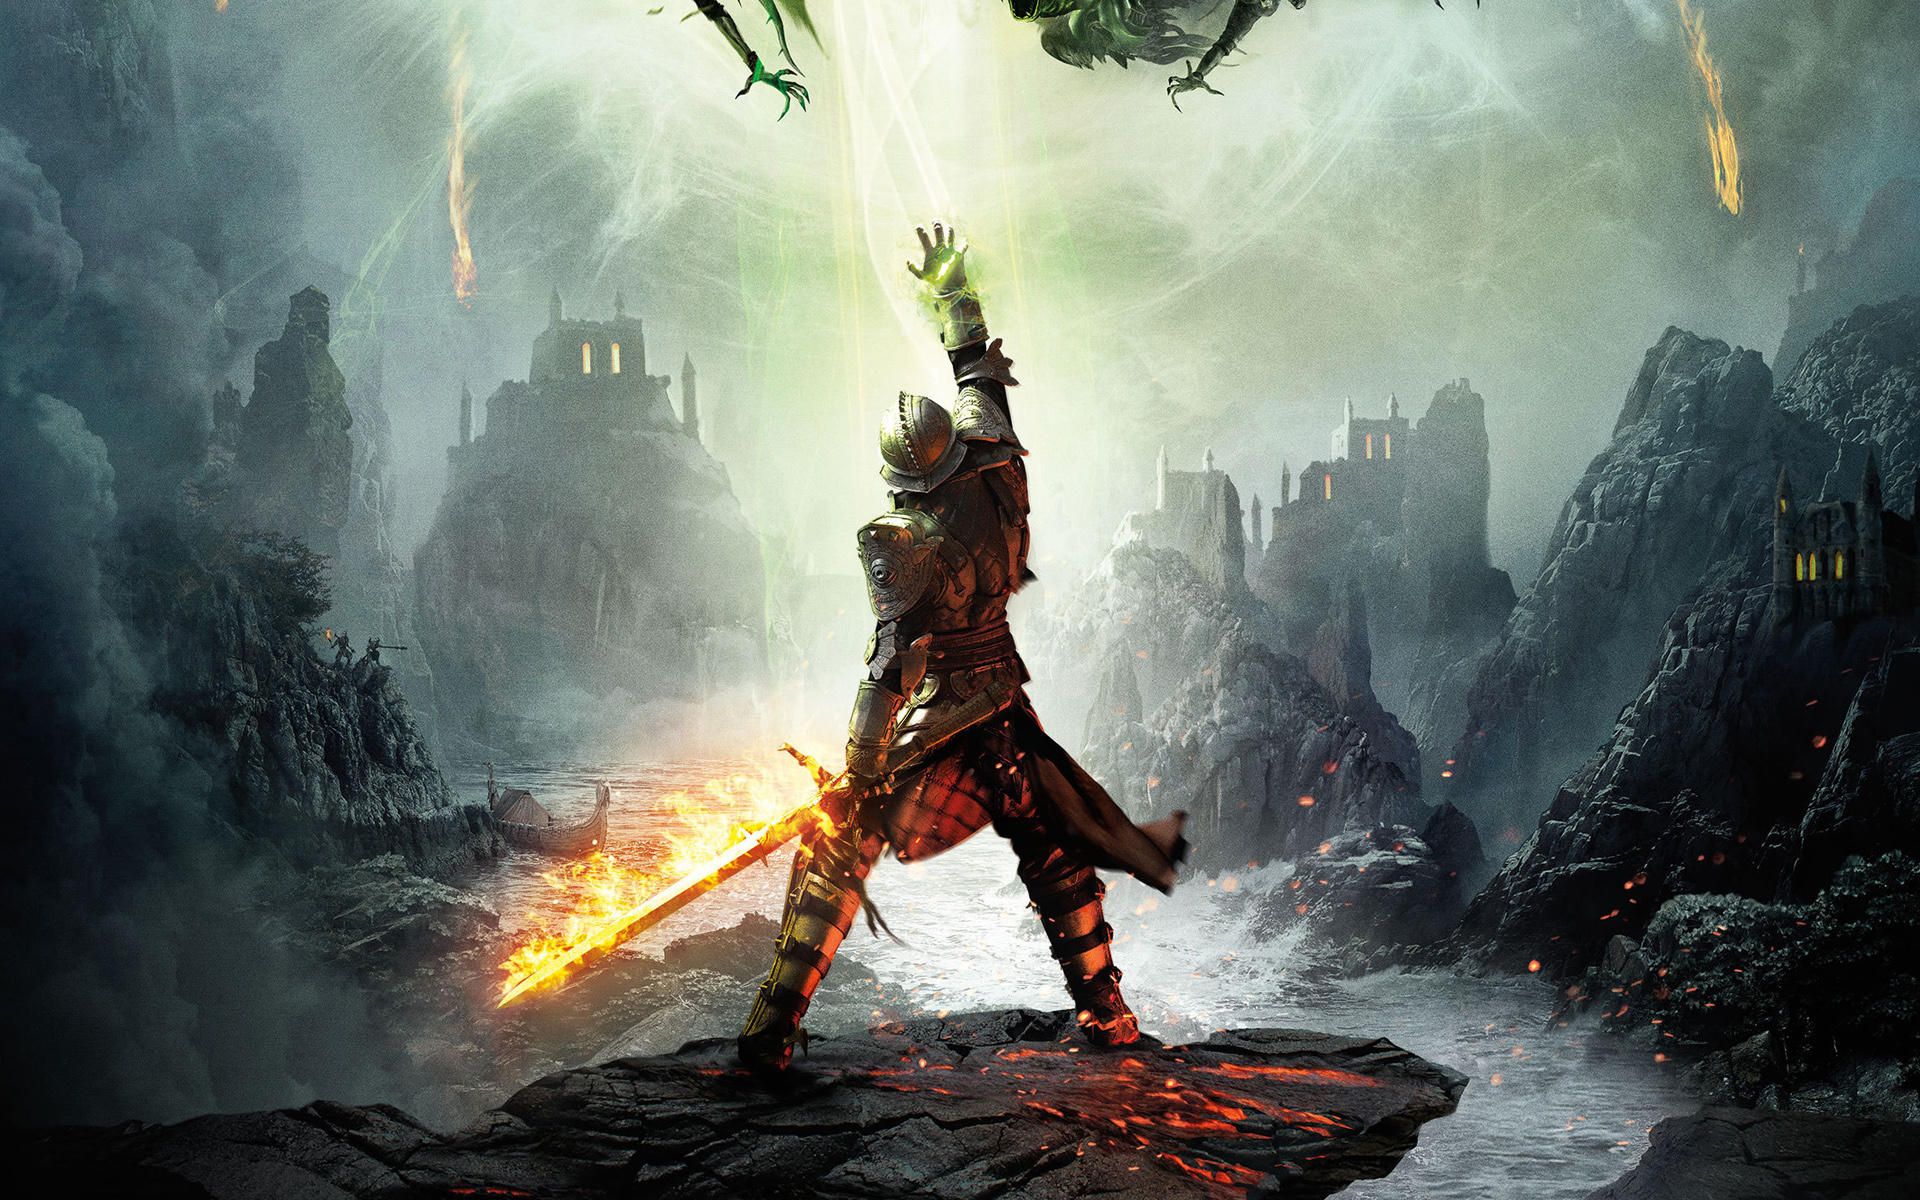 Asus pb287q monitor 2014 4k uhd wallpaper competition page 64 - Dragon Age Inquisition 2014 Game Wallpapers Hd Wallpapers